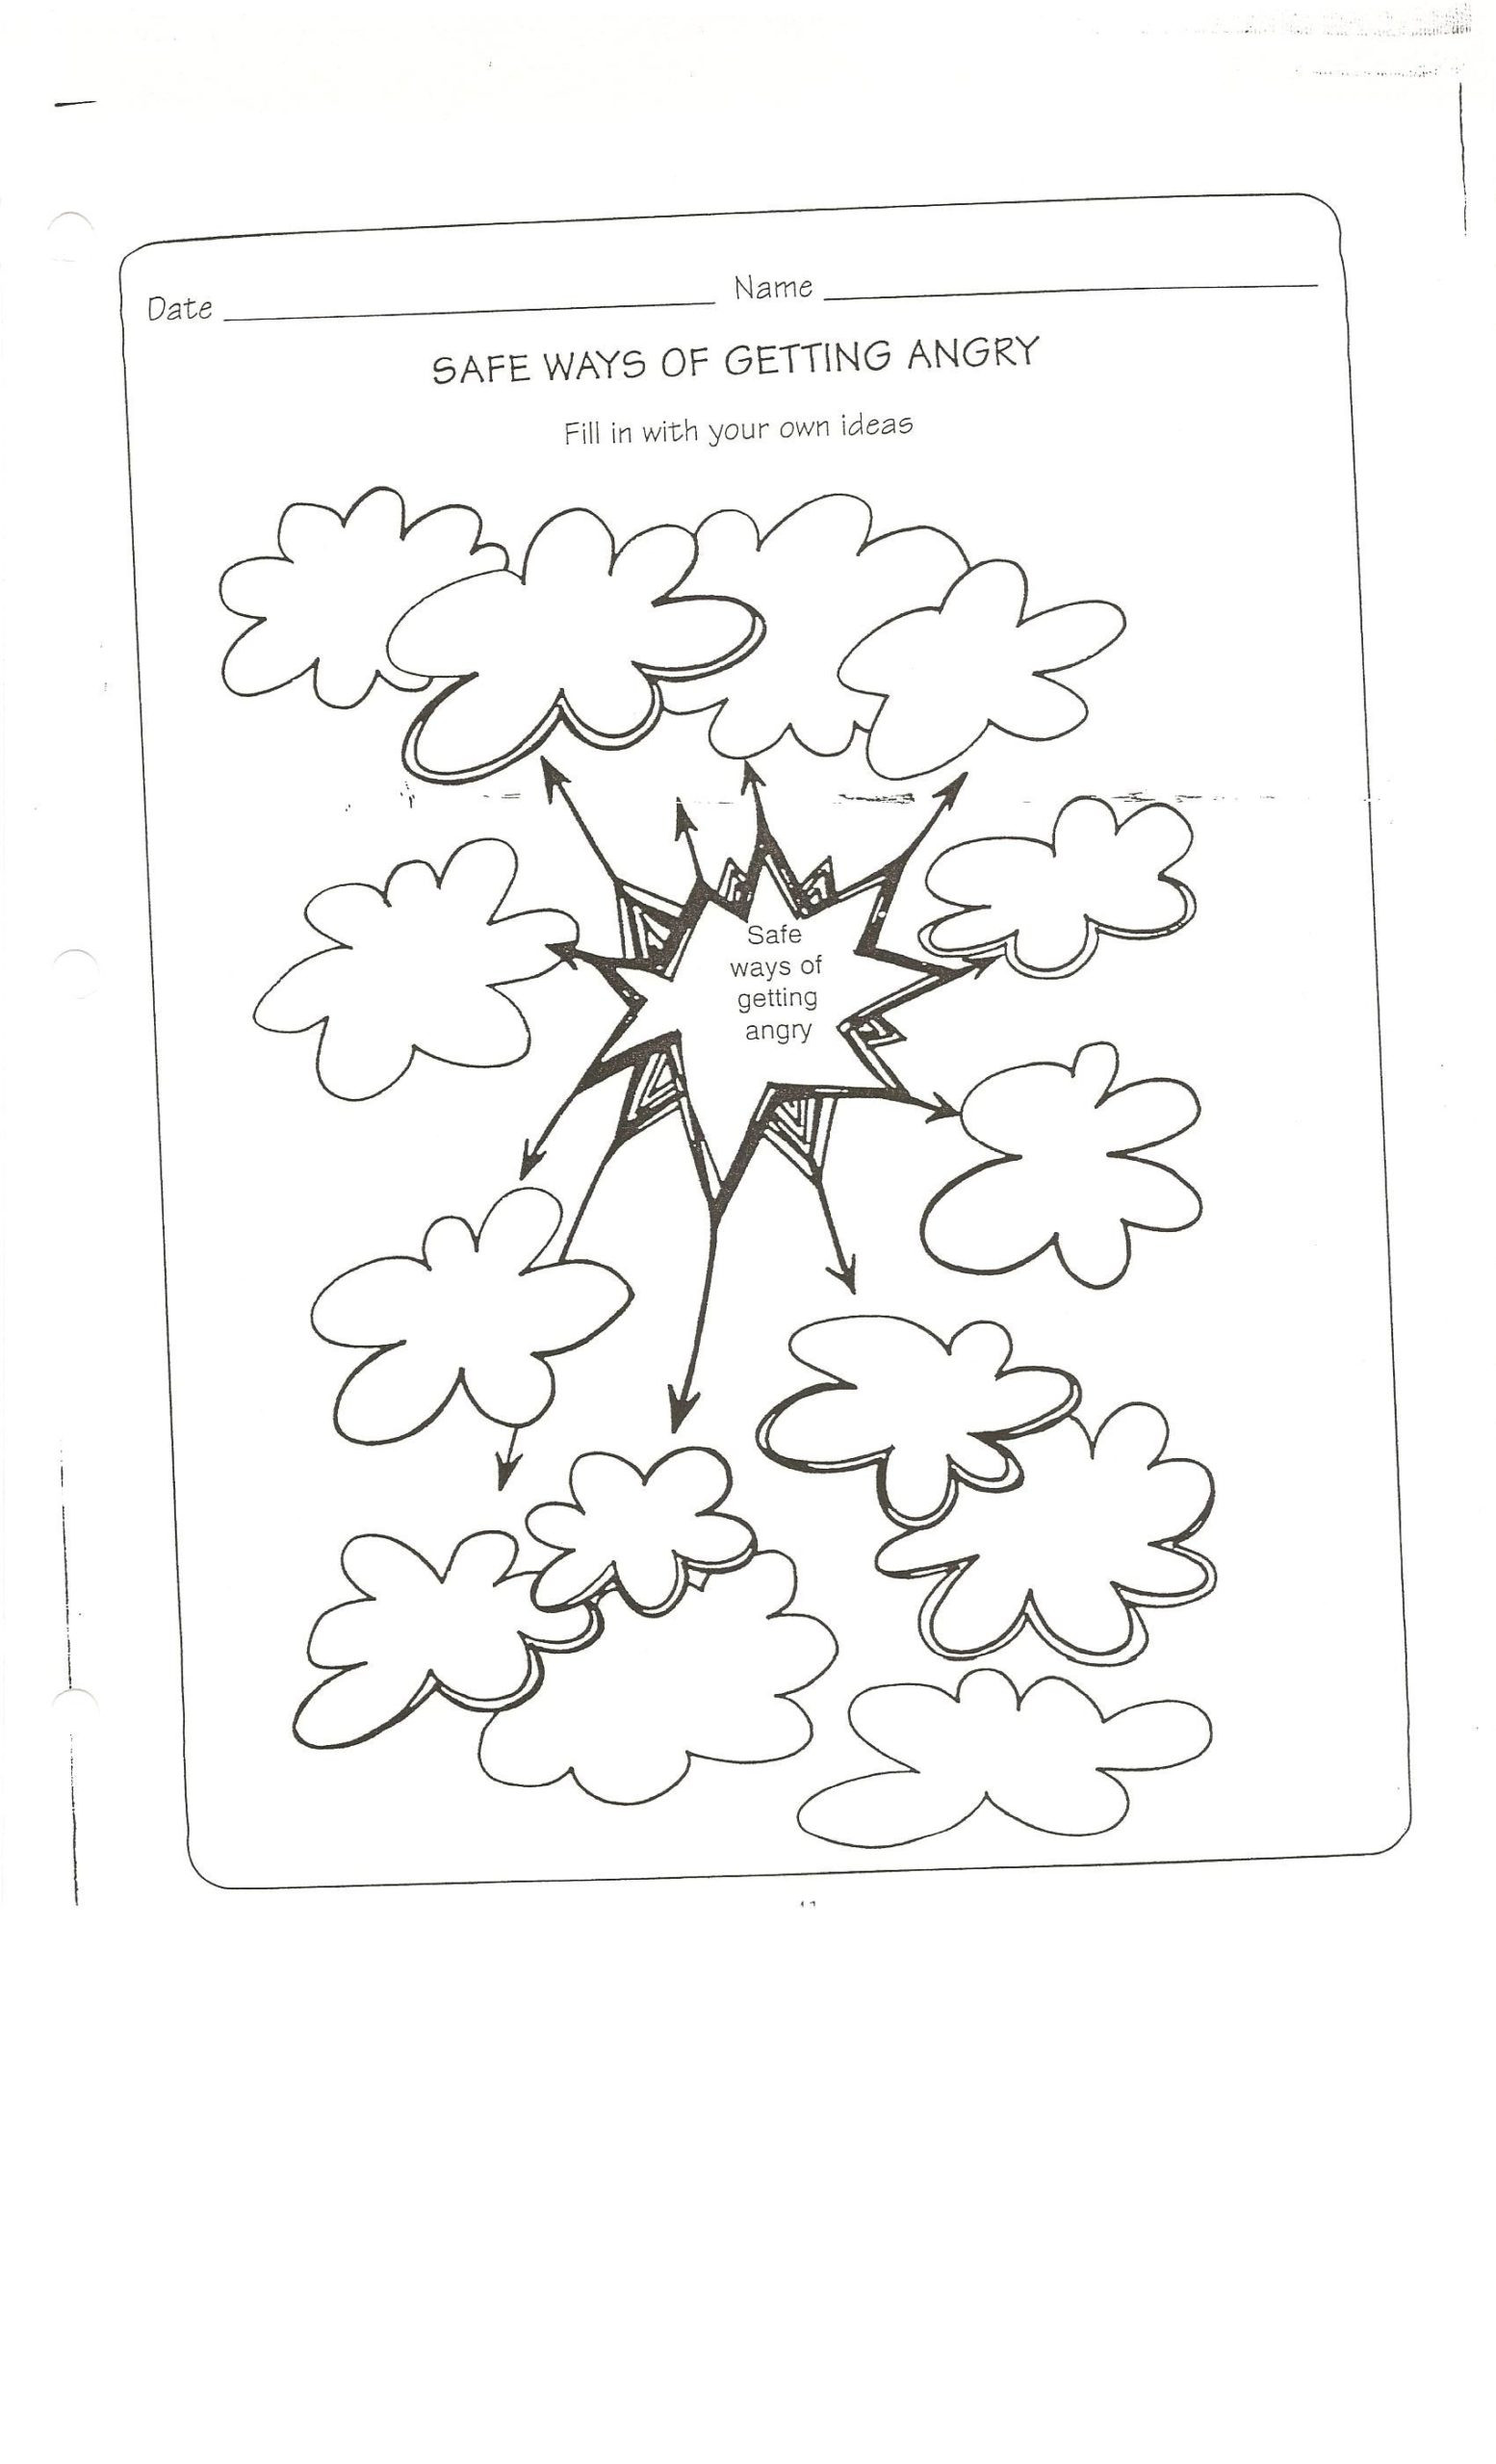 Anger Management Worksheet for Teenagers Safe Way to Get Angry Worksheet Conflict Resolution Anger